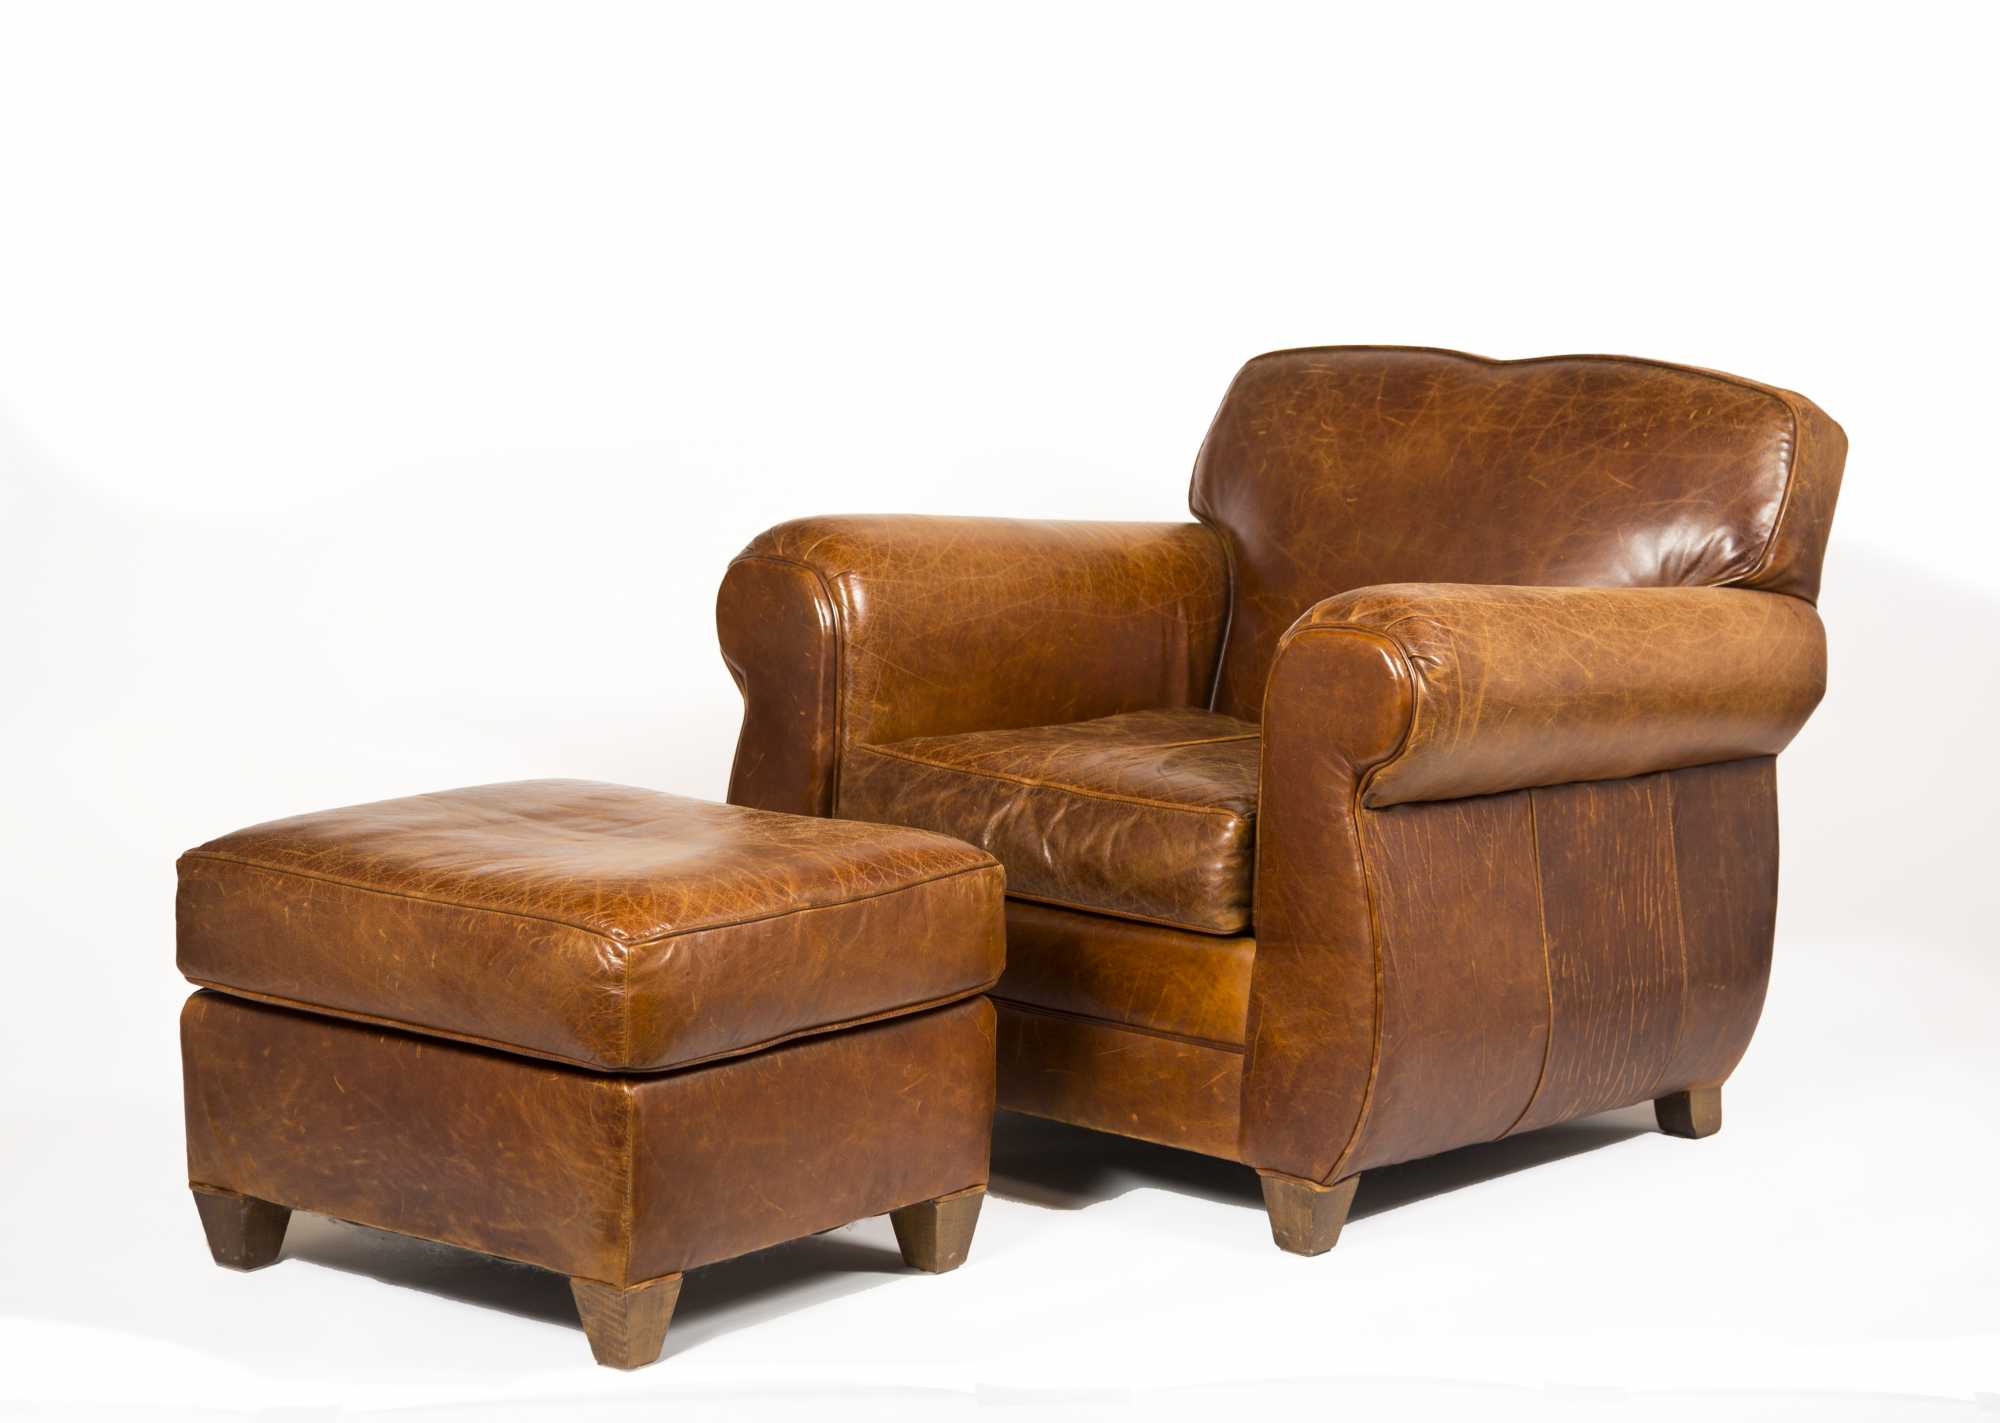 Leather Armchair And Ottoman Made By Mitchell Gold Especially